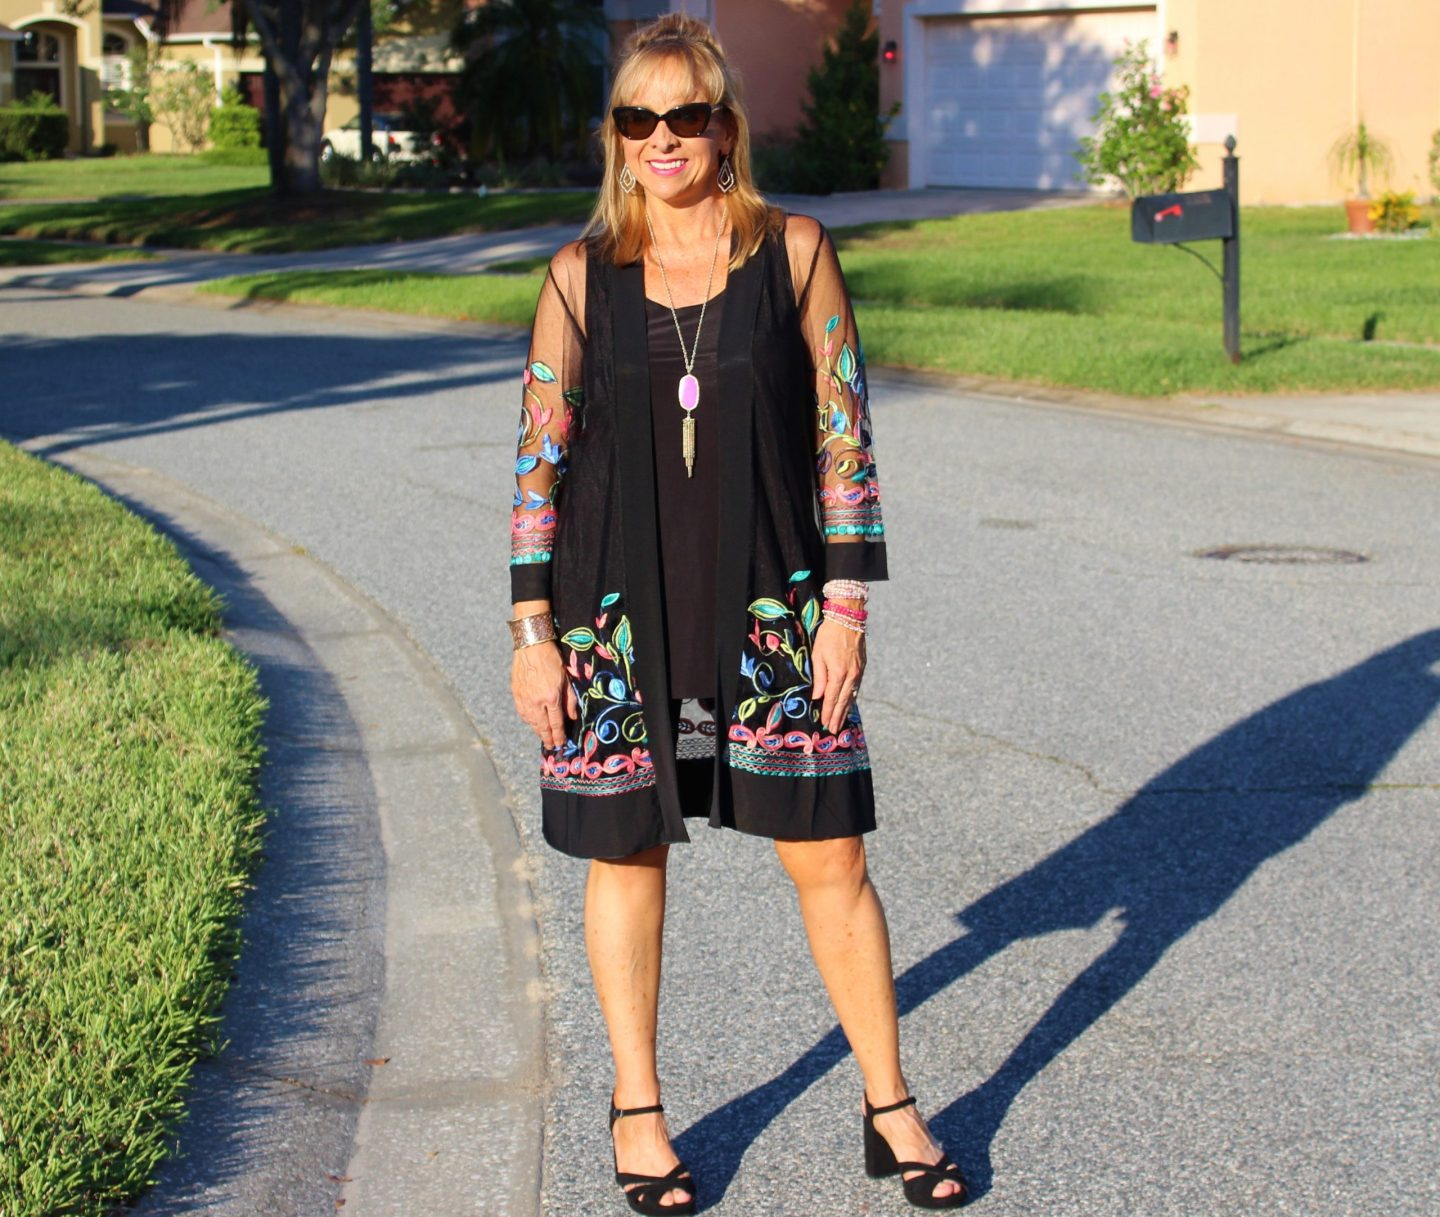 Black duster + Short + Black Heeled Sandal